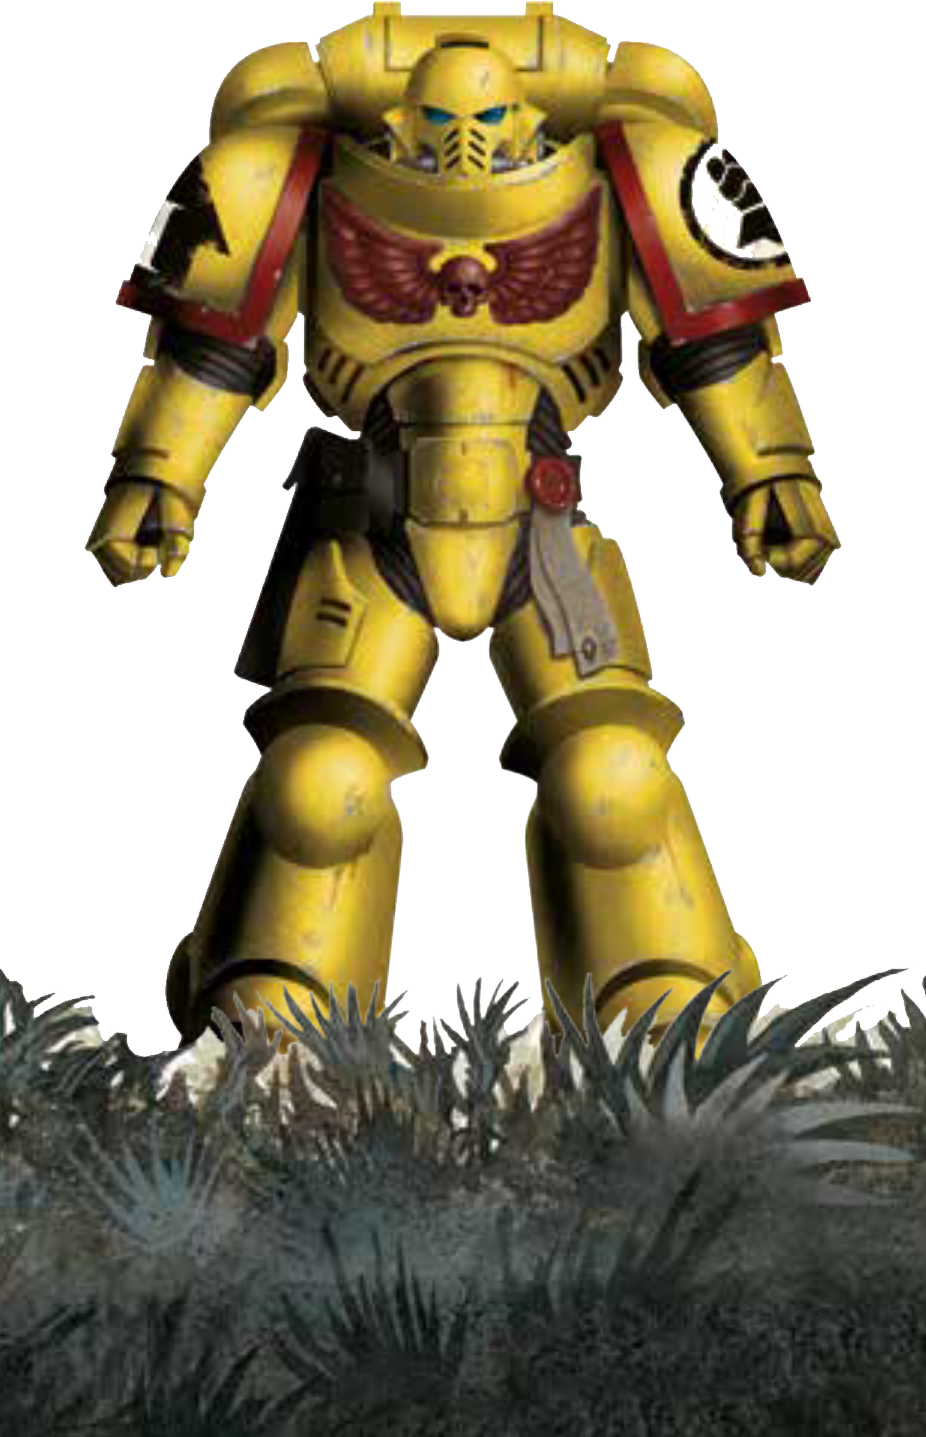 An image of the Warhammer character, Space Marine.